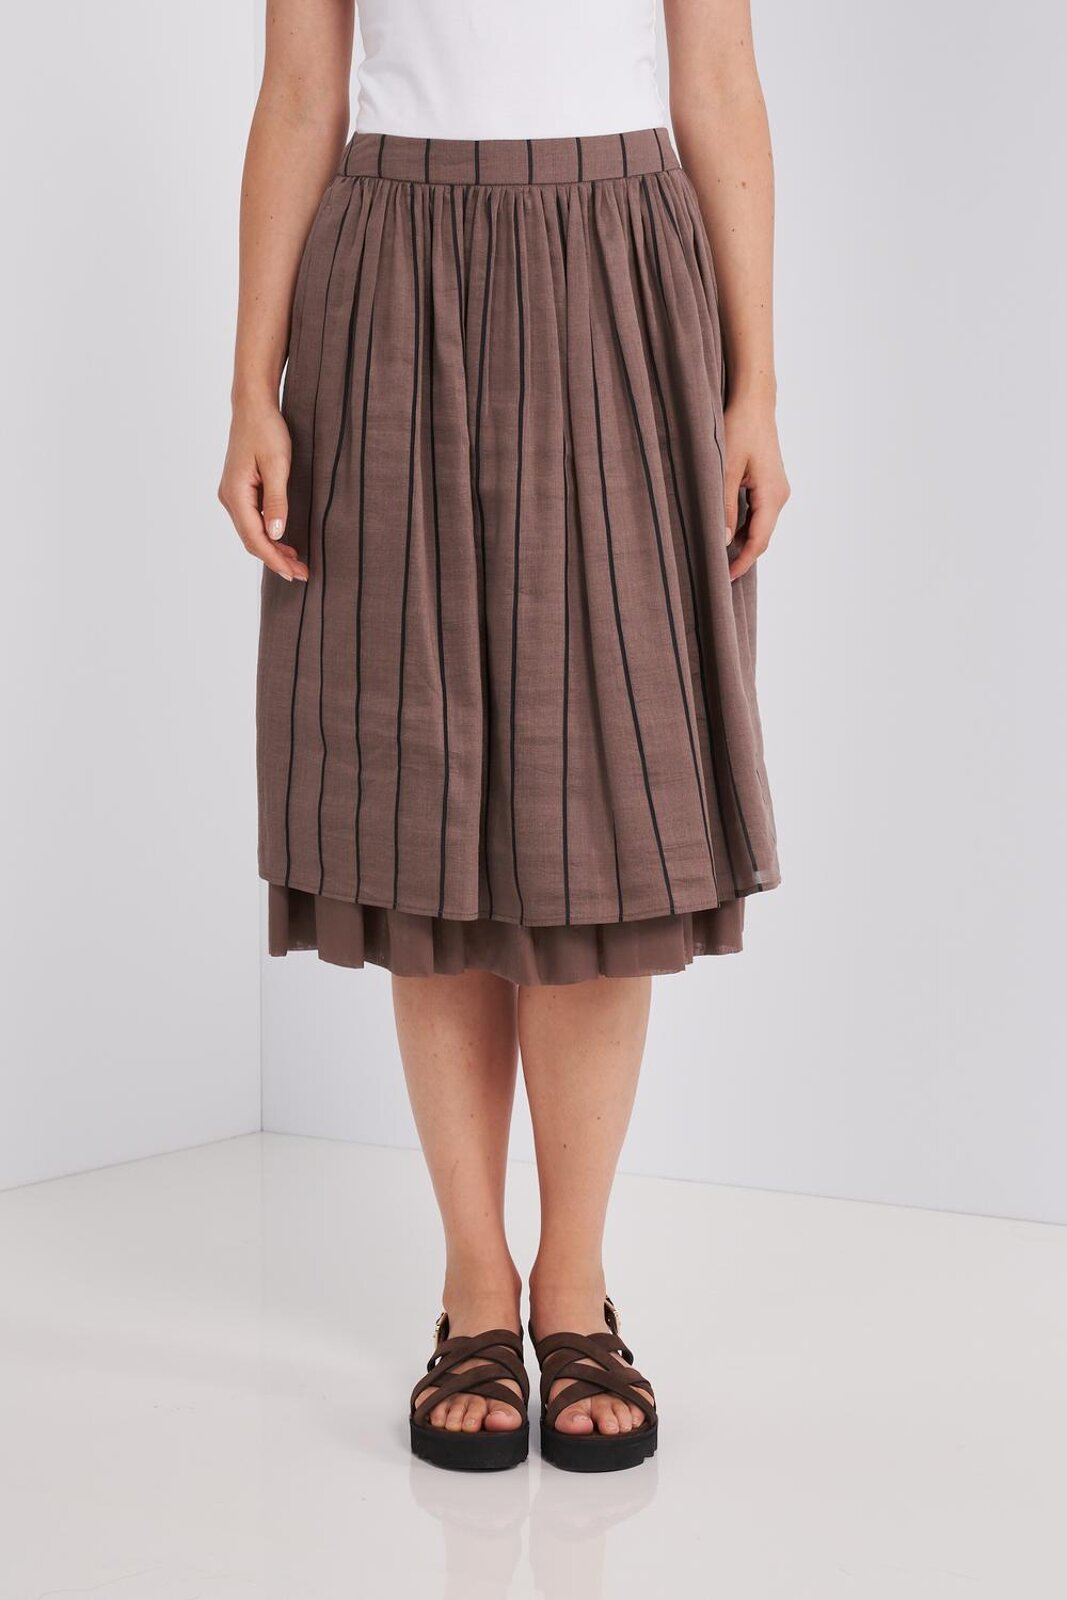 Knee-length Midi Skirt In Fluid Linen And Silk Striped Fabric With Underskirt. Regular waist, two side pockets, zip closure on one side. - Peserico